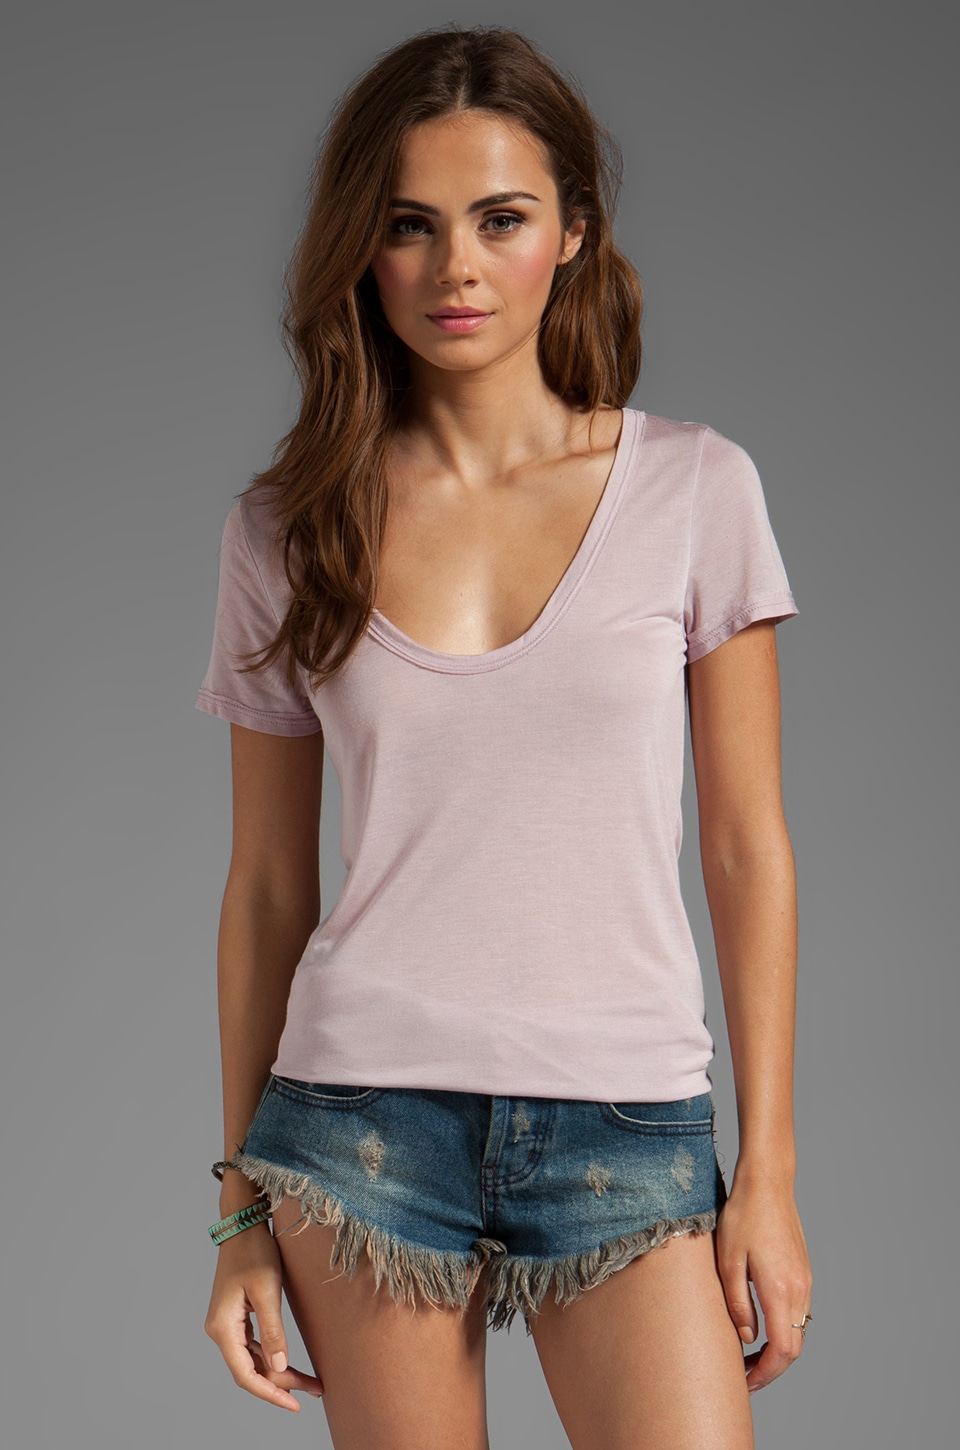 Chaser S/S U Neck Tee in Dirty Rose